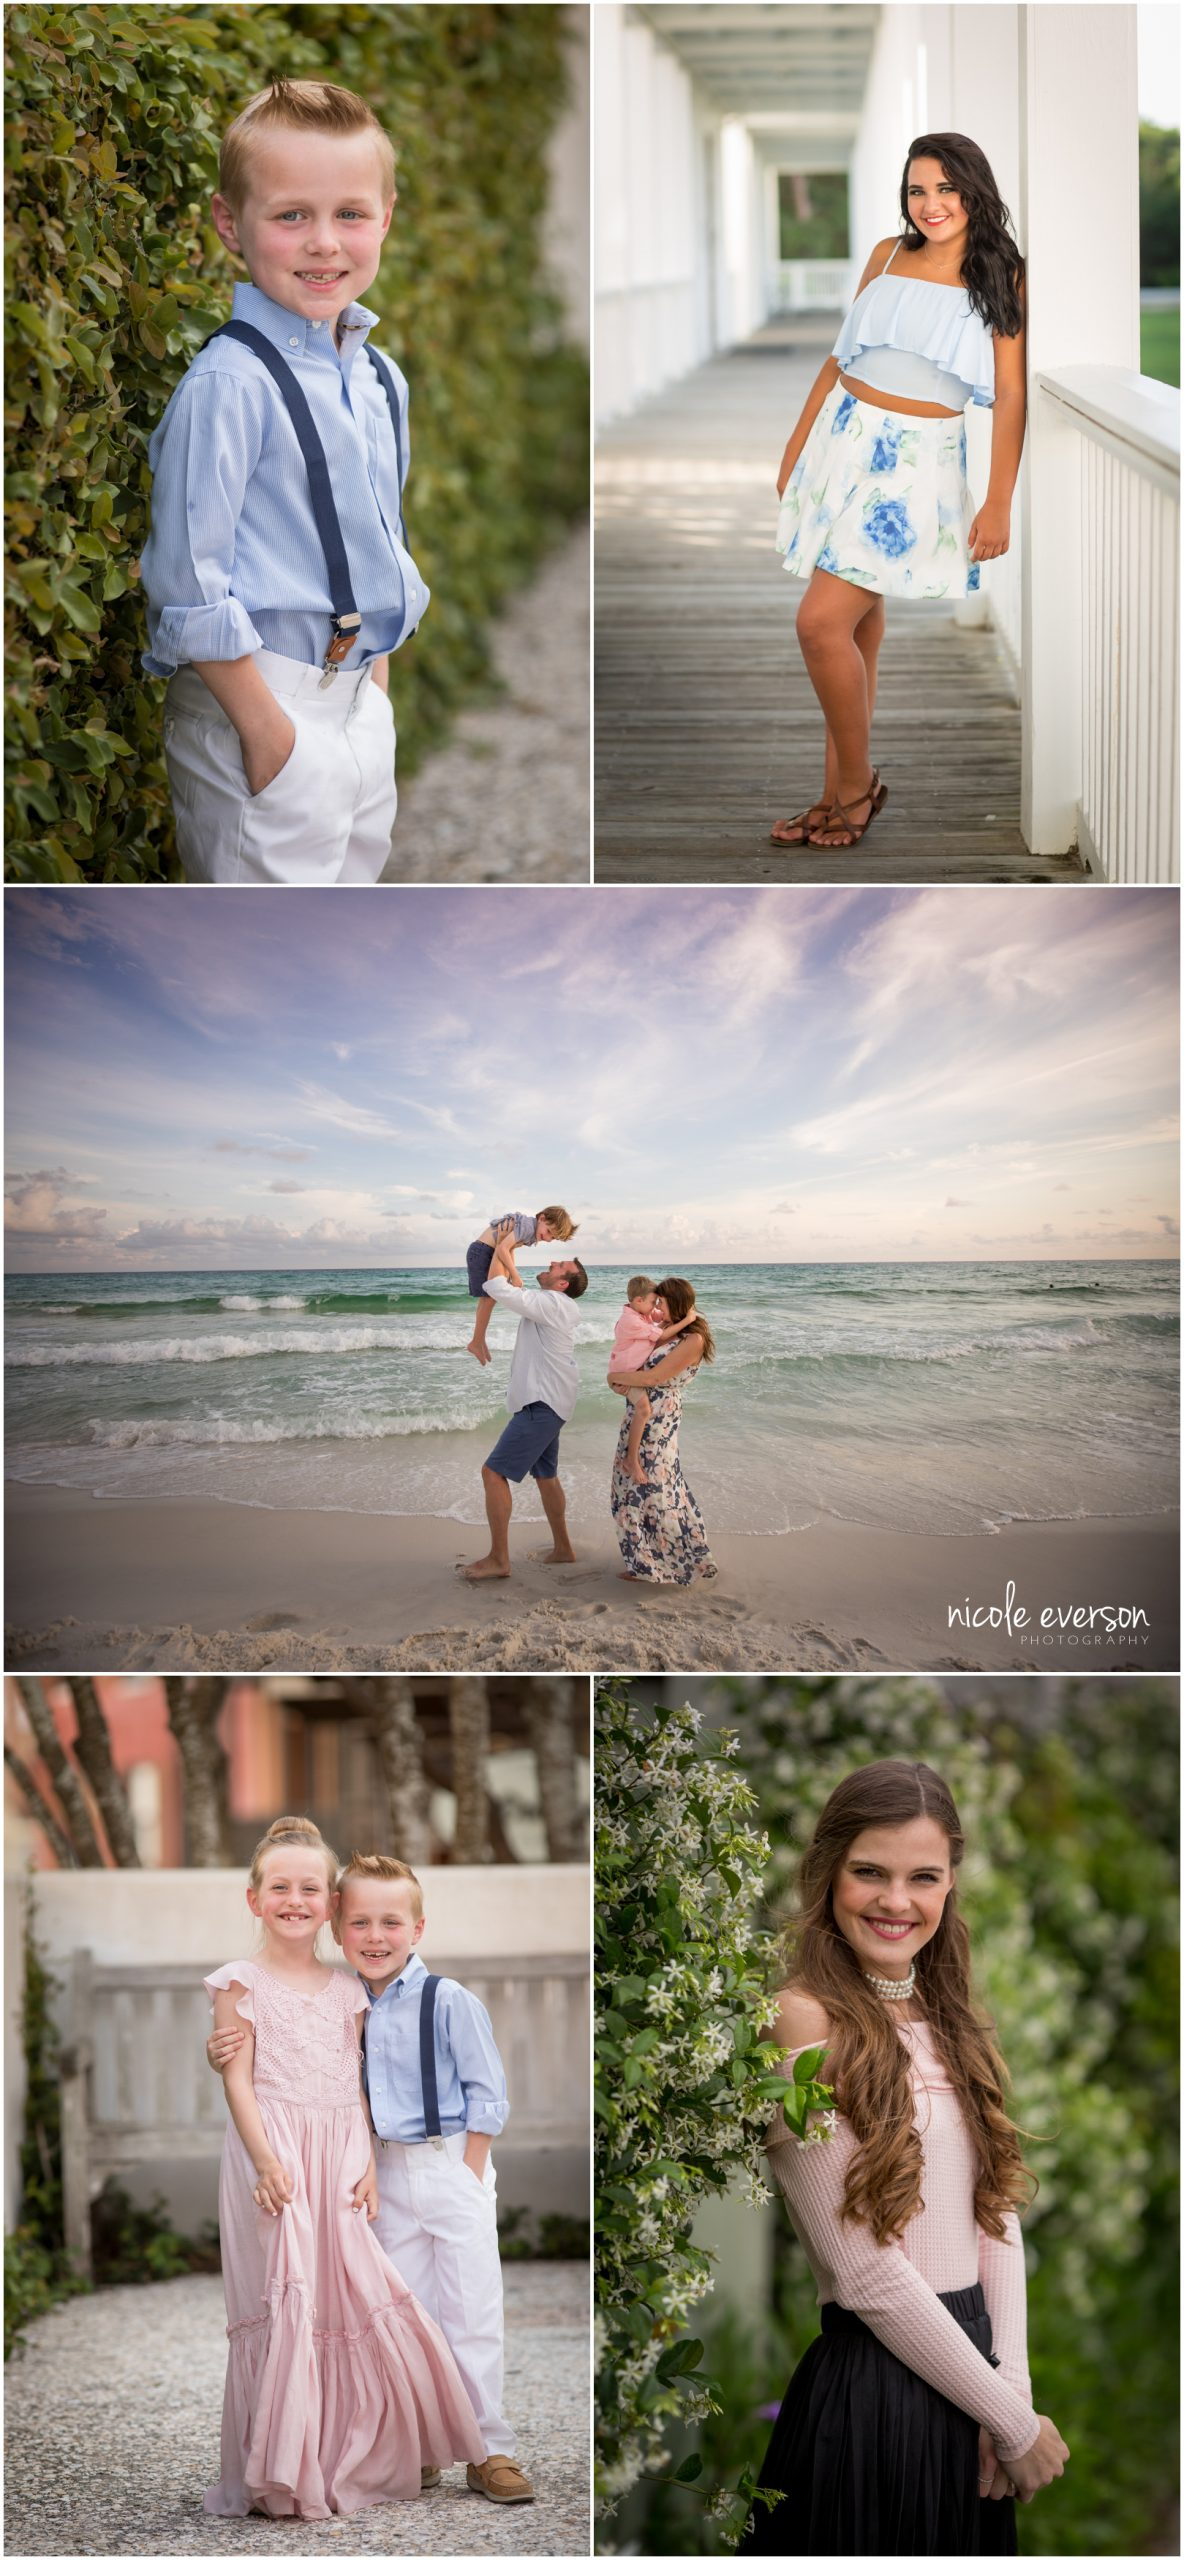 Photos of a family photographed in Alys Beach, and seniors photographed around town